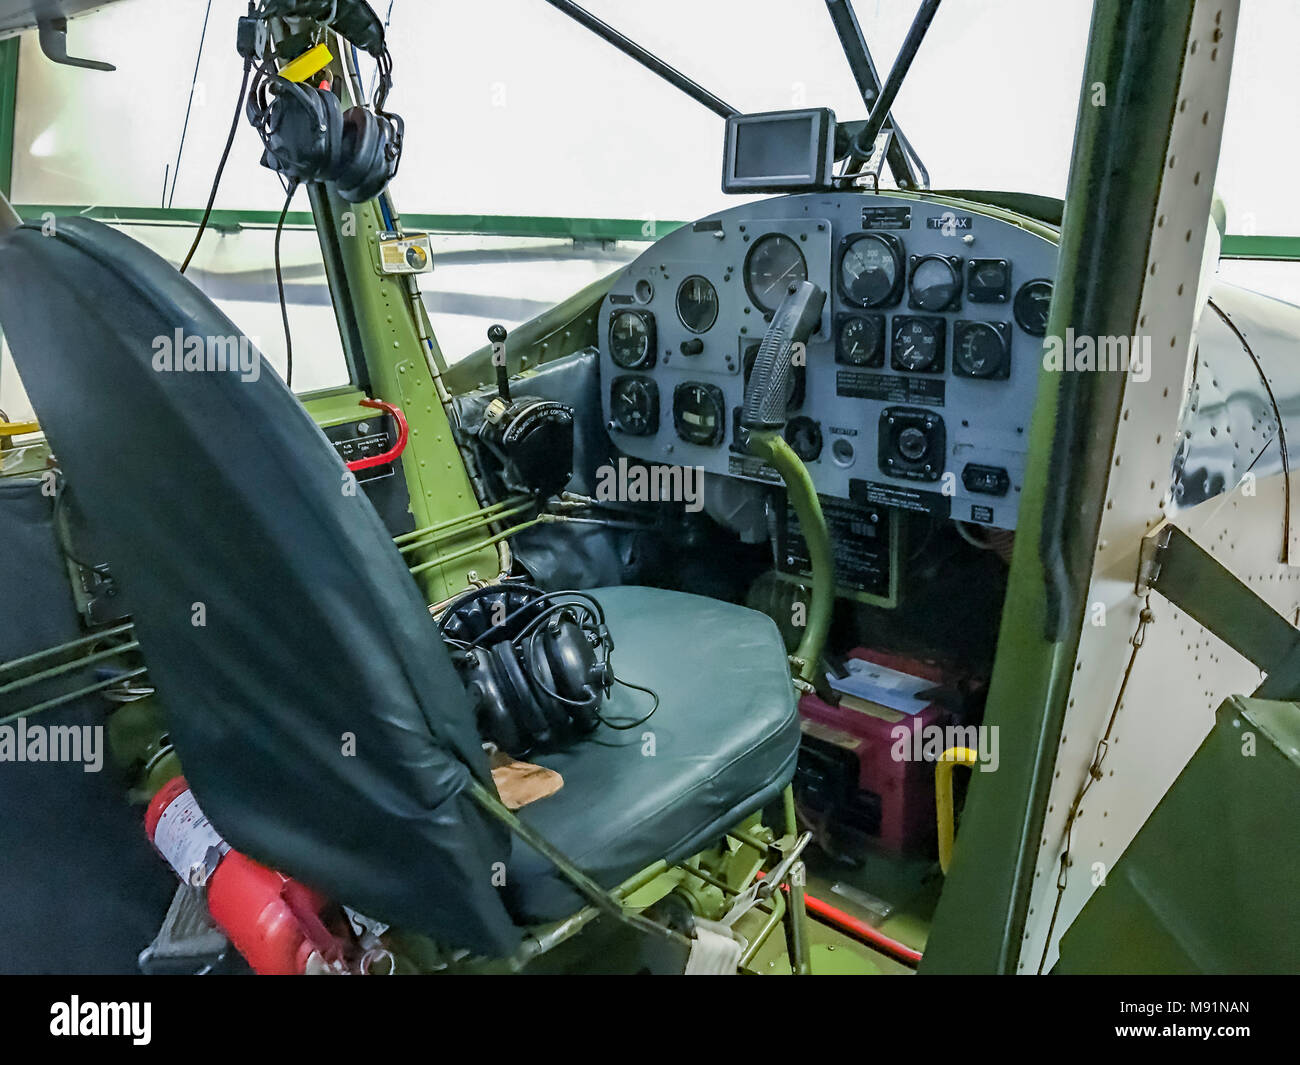 Pilots Seat of a Cessna Airplane. Stock Photo